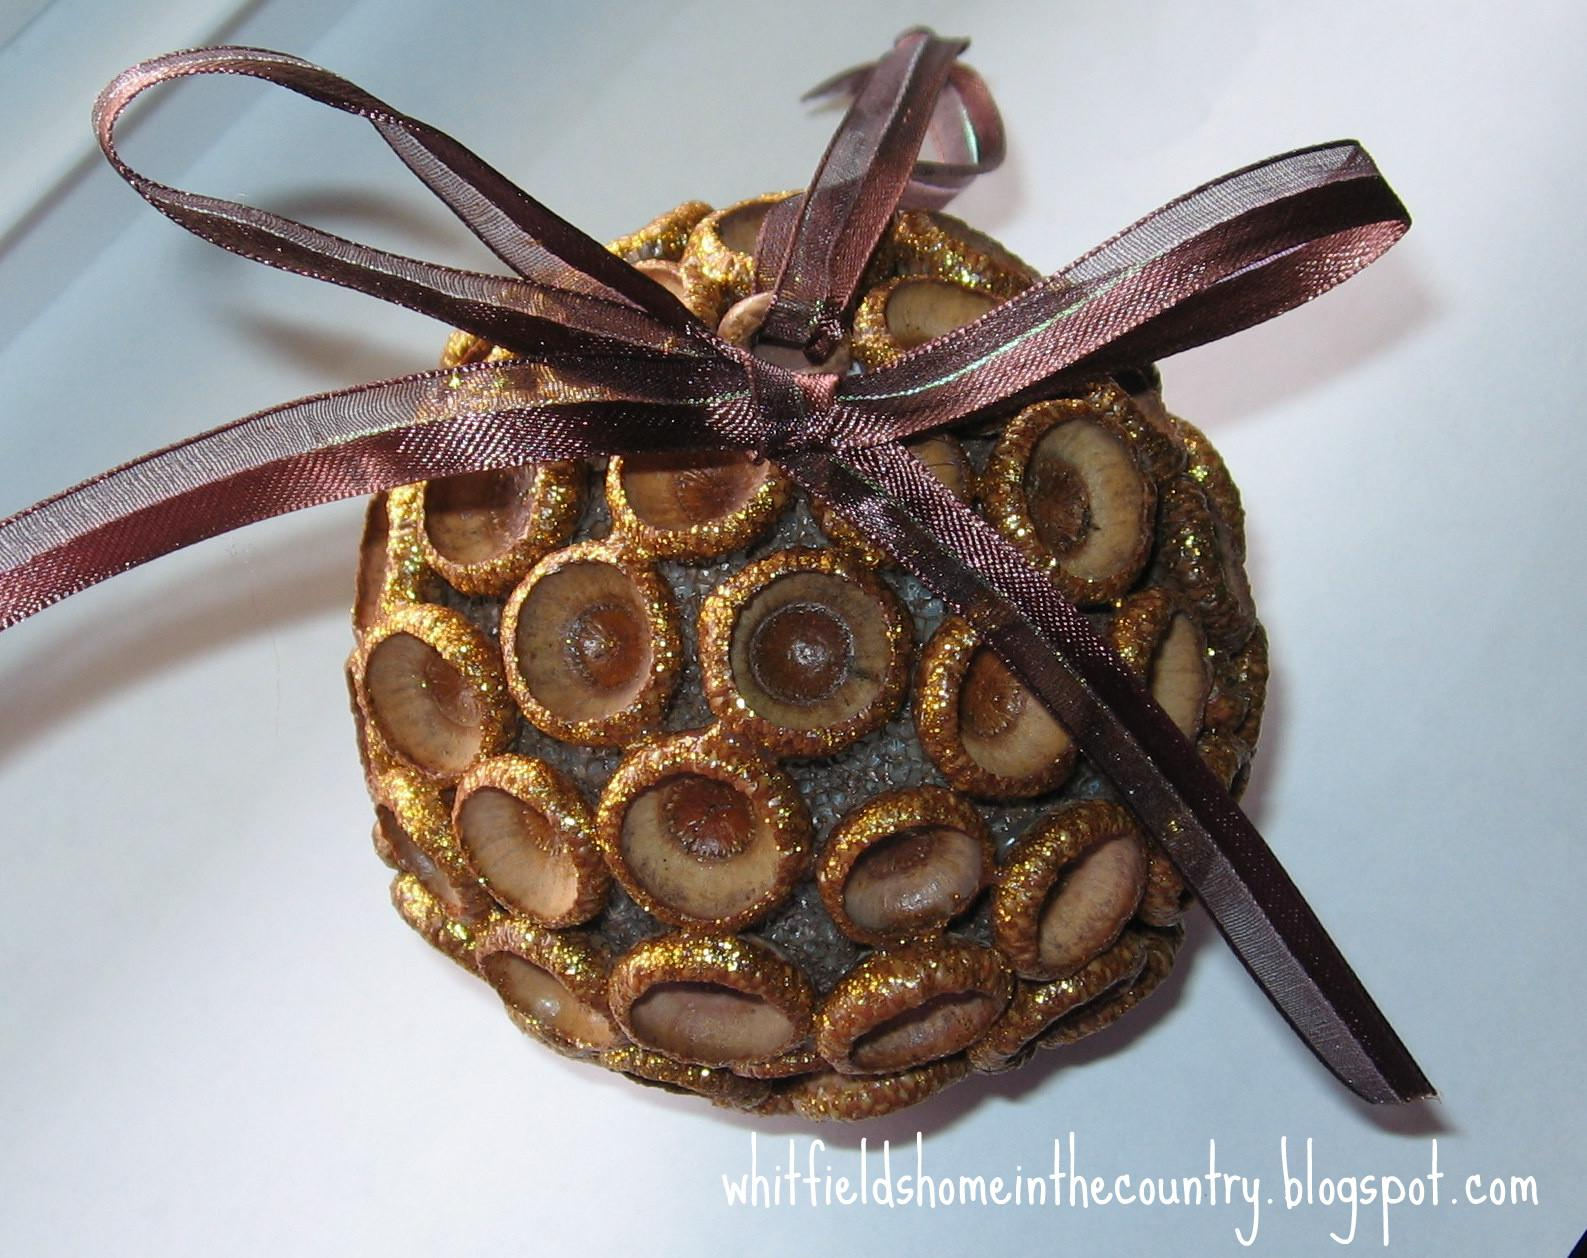 Whitfield Home Country Diy Pretty Acorn